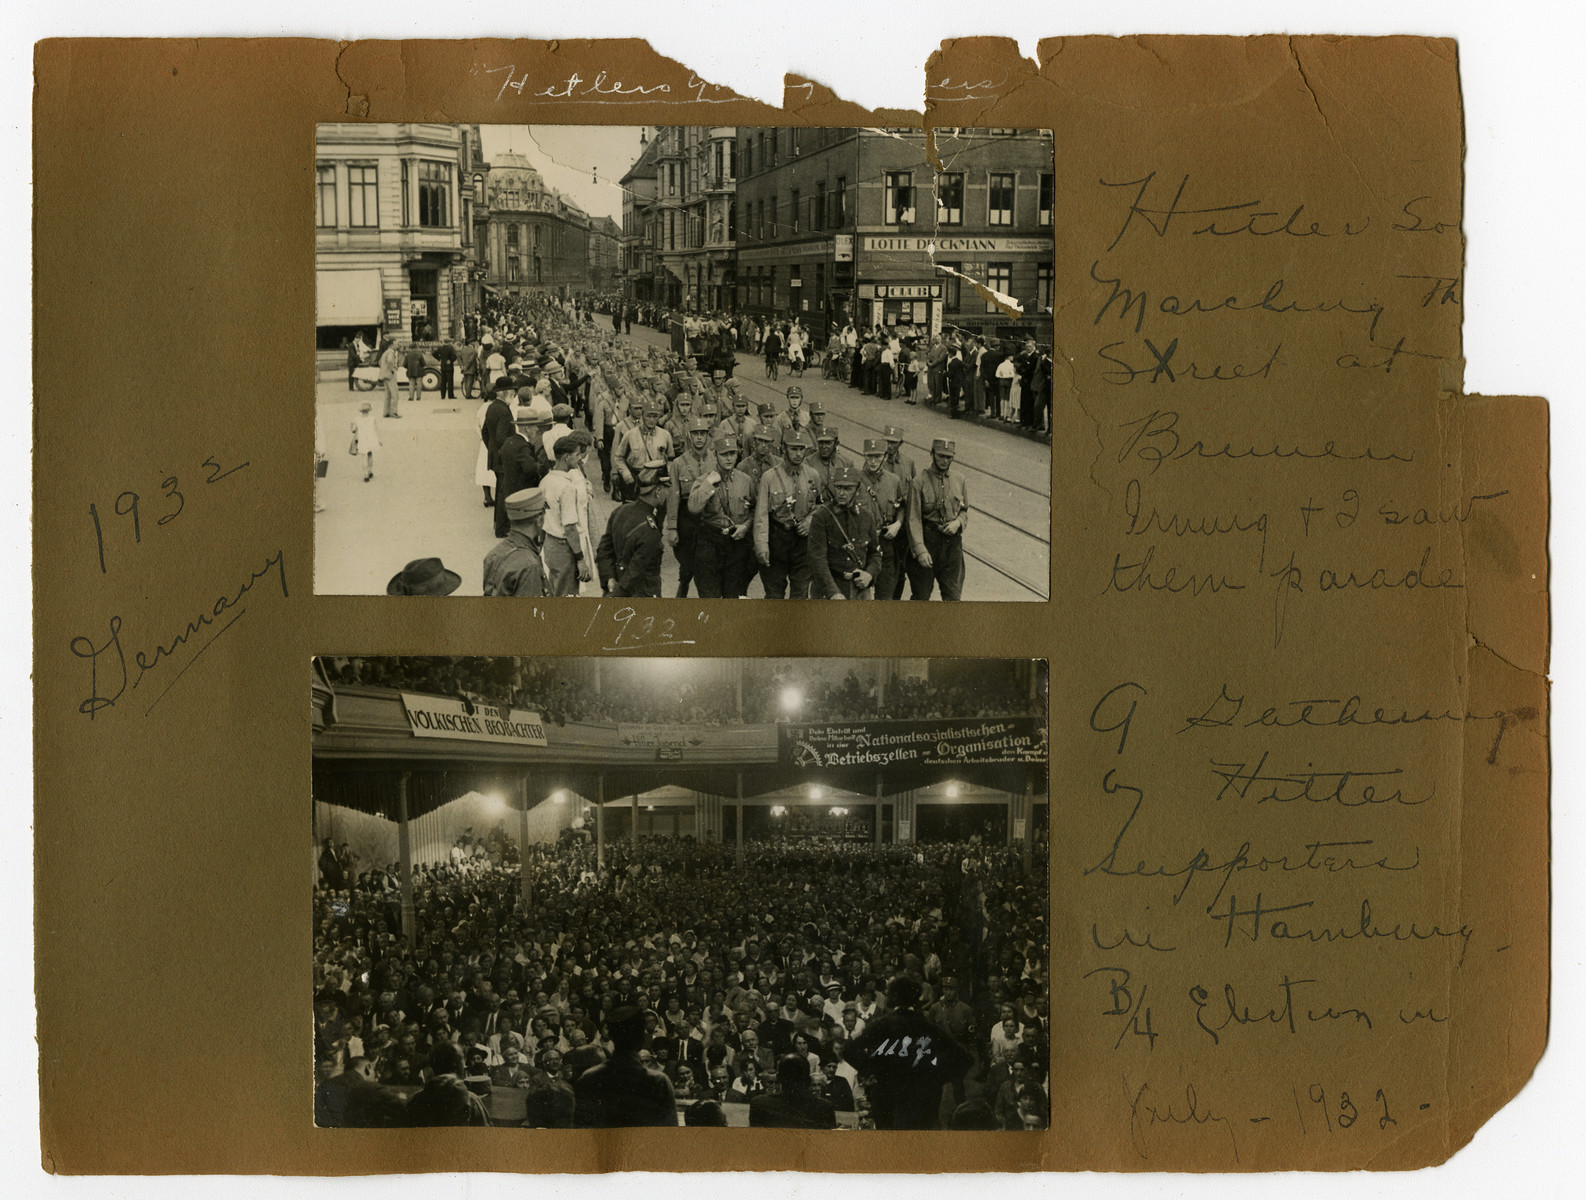 "Photograph album page showing Nazi soldiers and Hitler supporters in Germany, 1932.   Original caption on album page reads, ""1932 Germany."" Bottom-most photo caption reads, ""A gathering of Hitler supporters in Hamburg before election in 1932."""